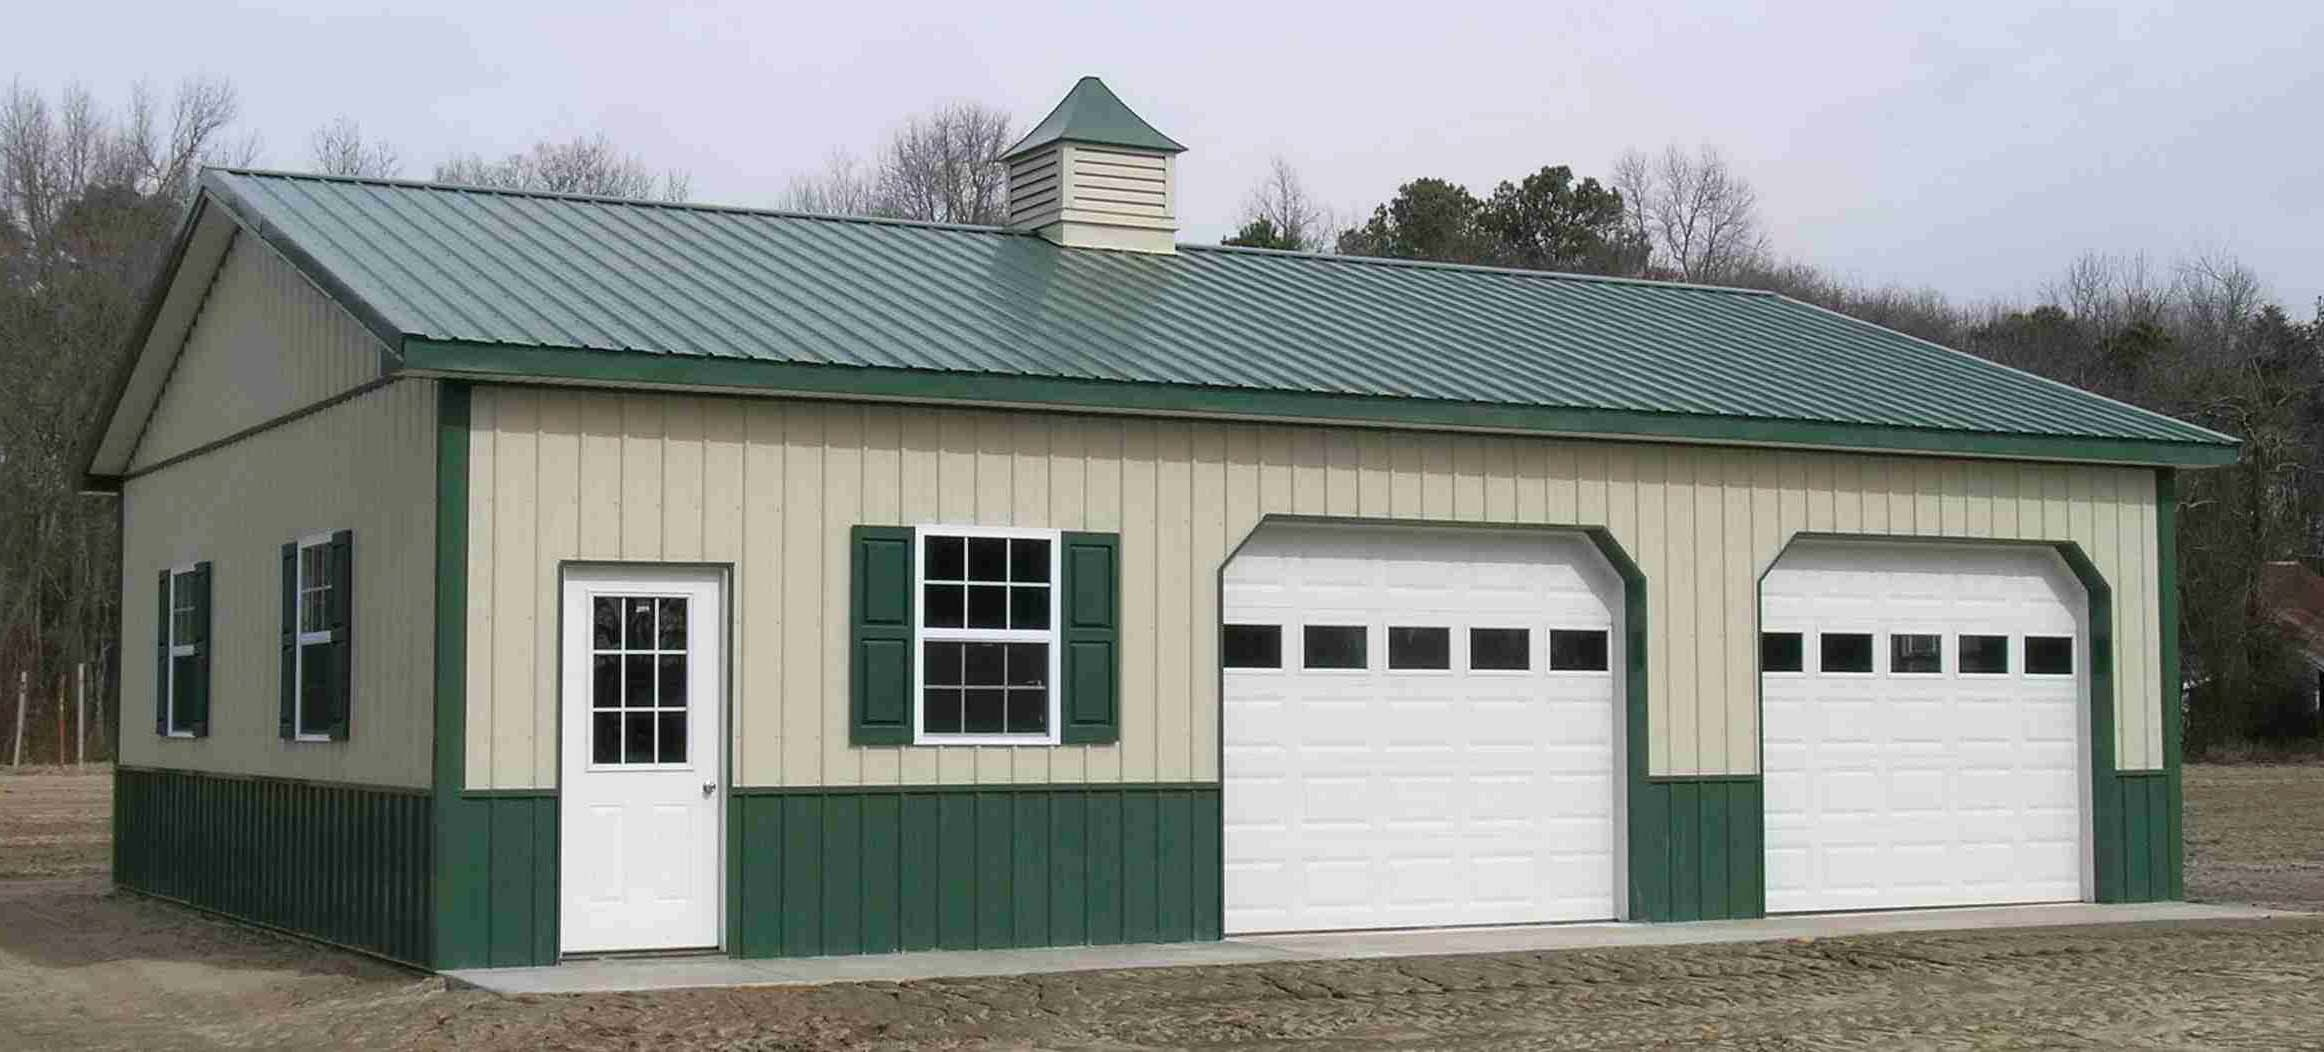 Metal Building with Two Garage Doors